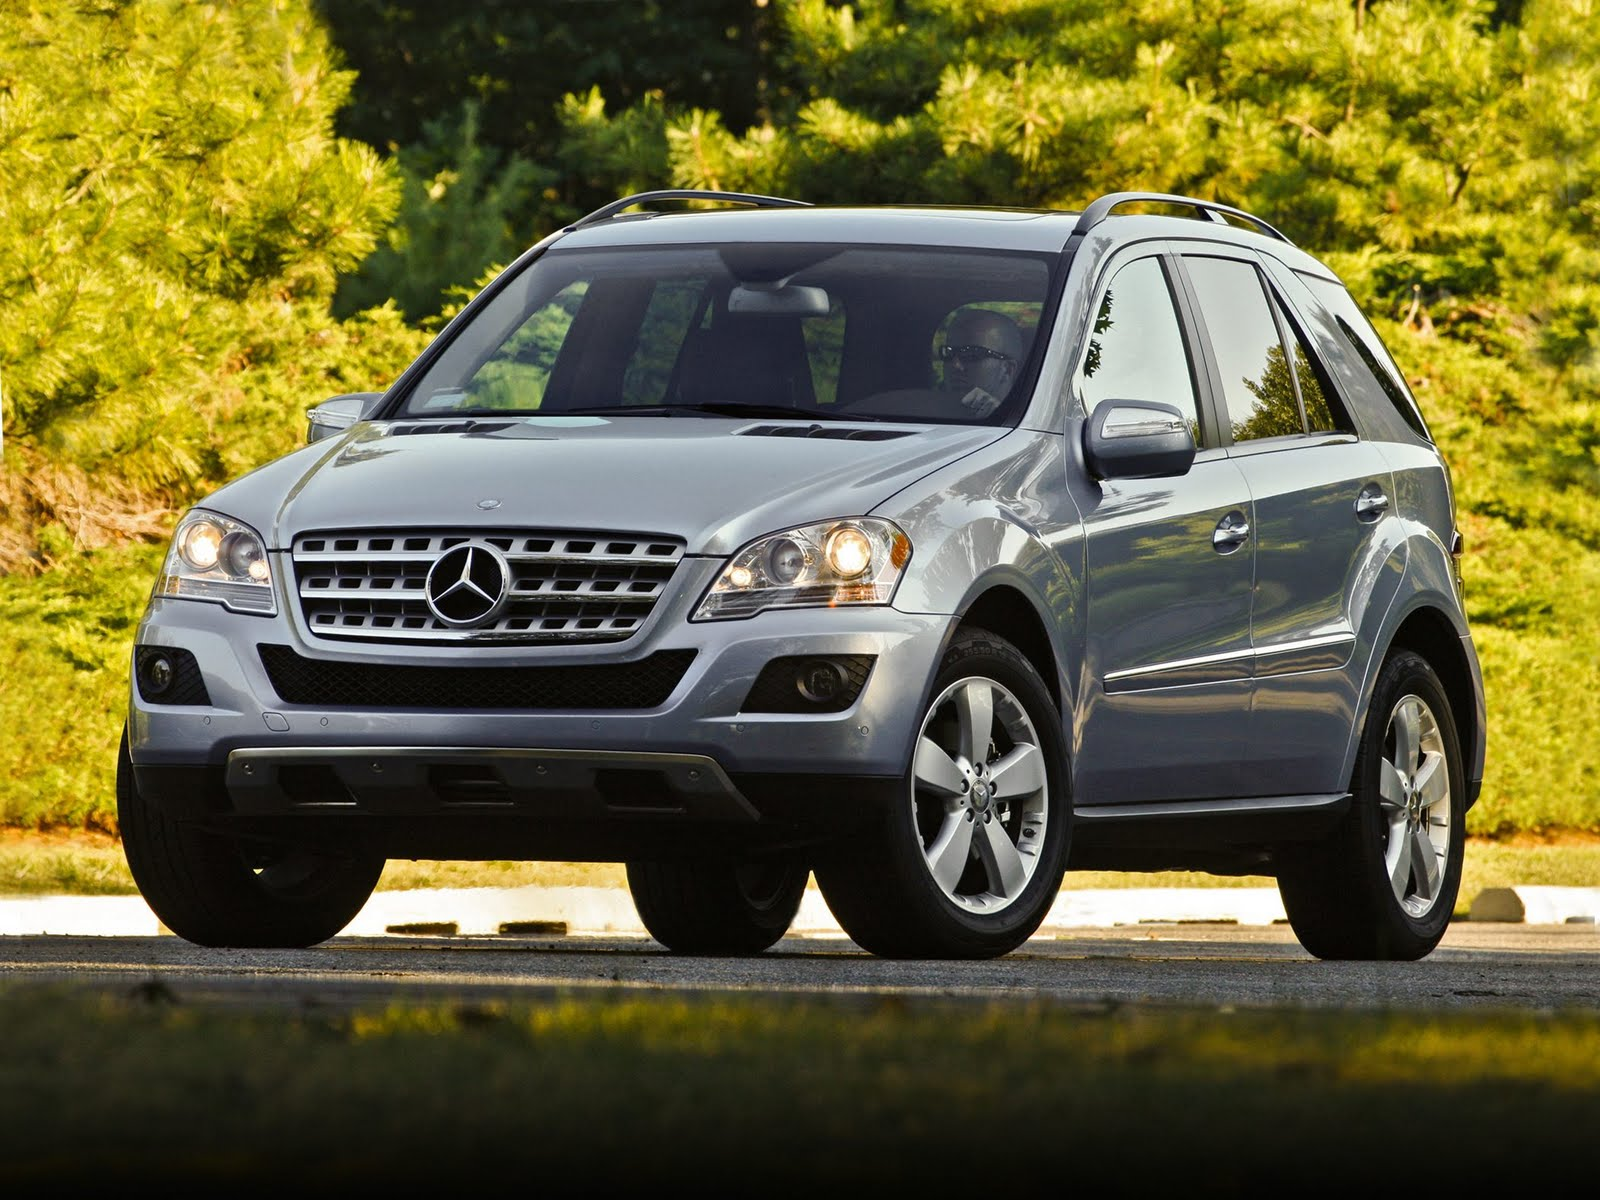 Cars review indian mercedes benz 2011 models and prices for Mercedes benz 2011 price